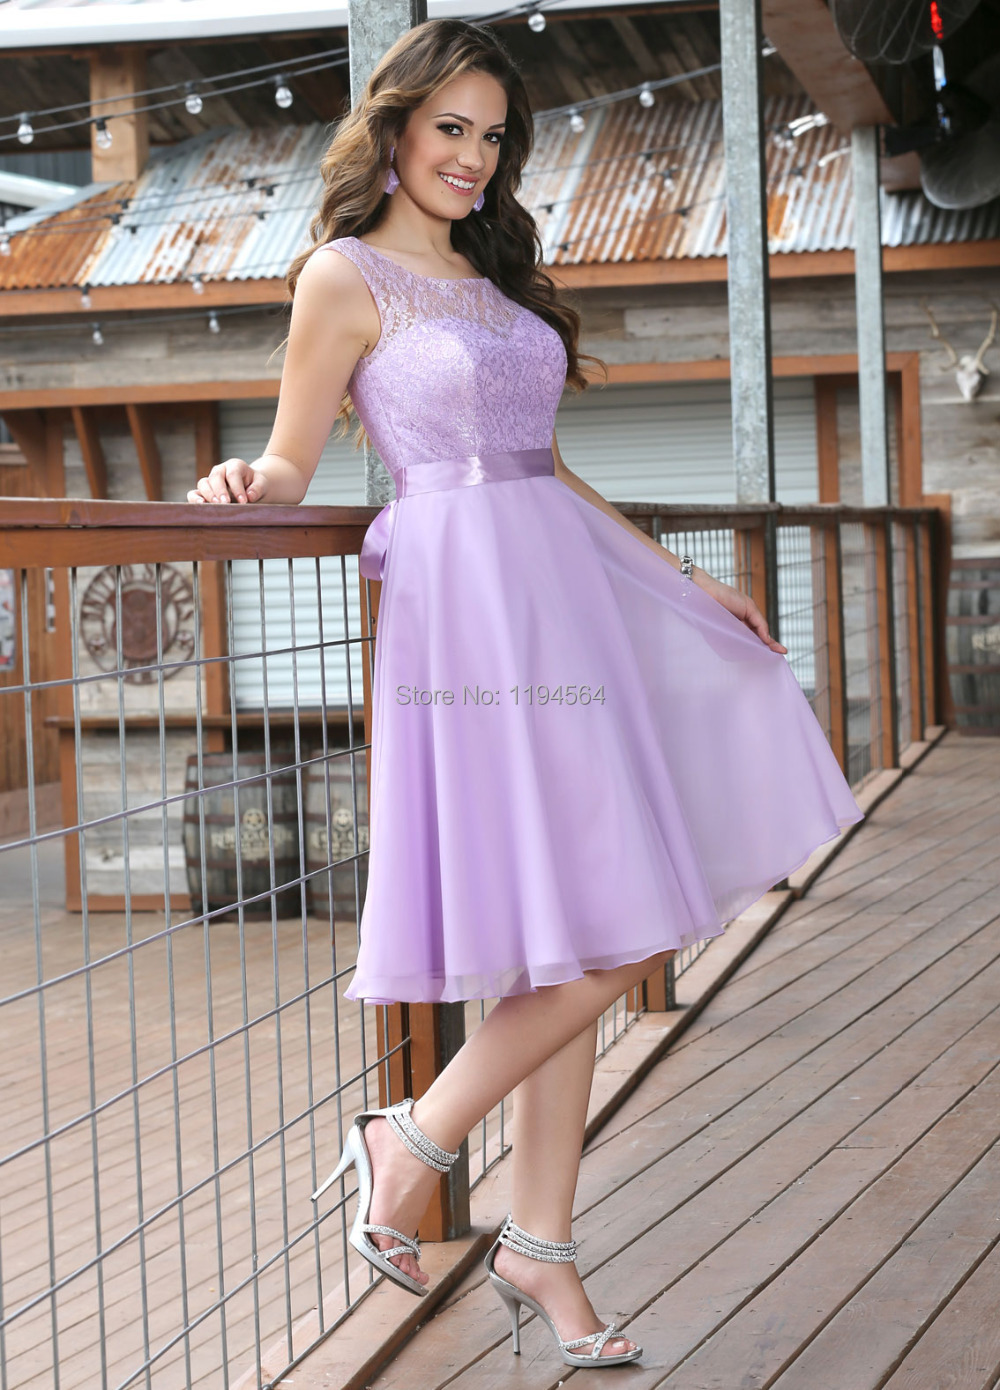 New Arrival 2017 Sheer Neck Chiffon Top Lace Bridesmaid Dresses Elegant Lilac For Wedding Guests Short Bb867 In From Weddings Events On